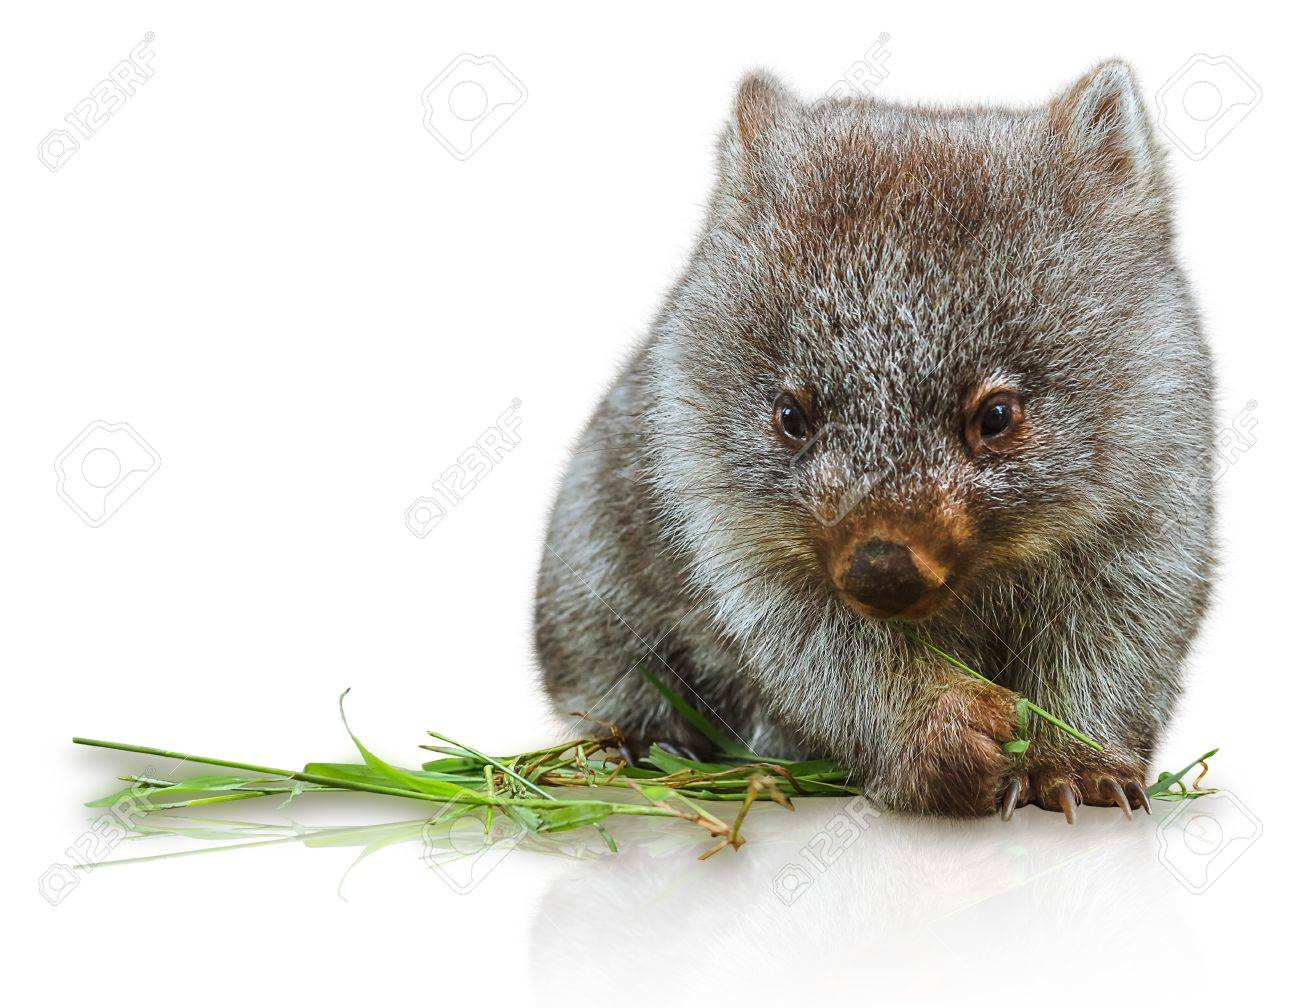 Little wombat female 3 months. Isolated on white background. Family of Wombat, mammal, marsupial herbivore that lives in Australia and Tasmania. Stock Photo - 41238193